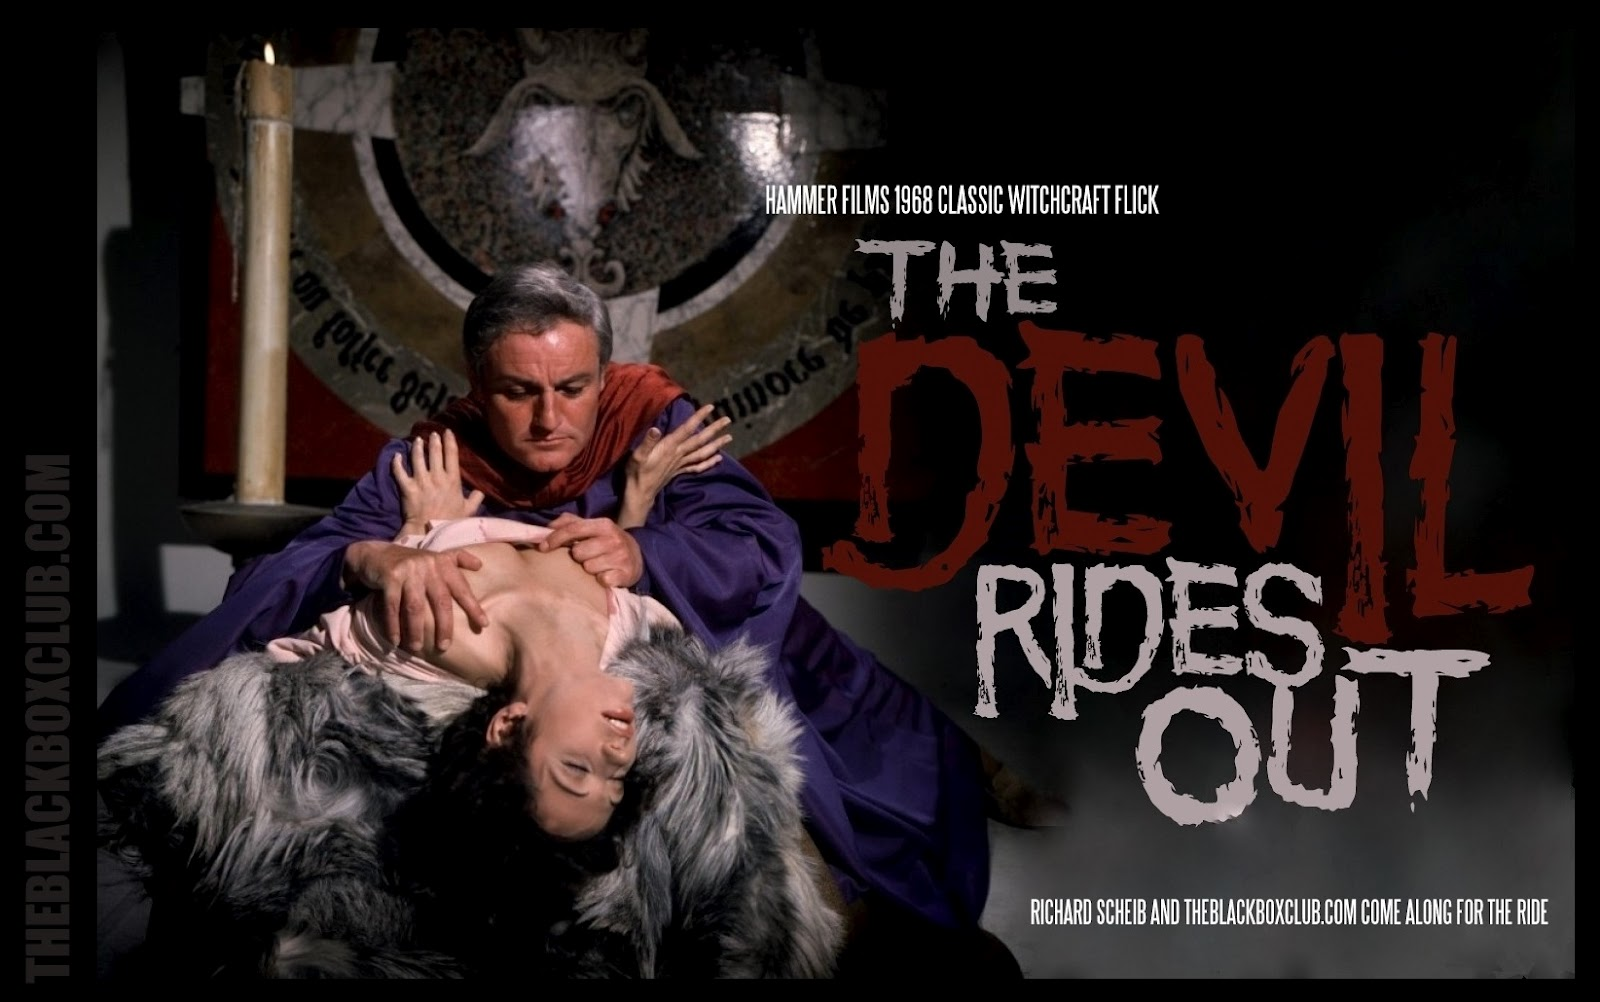 THE DEVIL RIDES OUT DEVILS BRIDE BLACKBOXCLUB 9